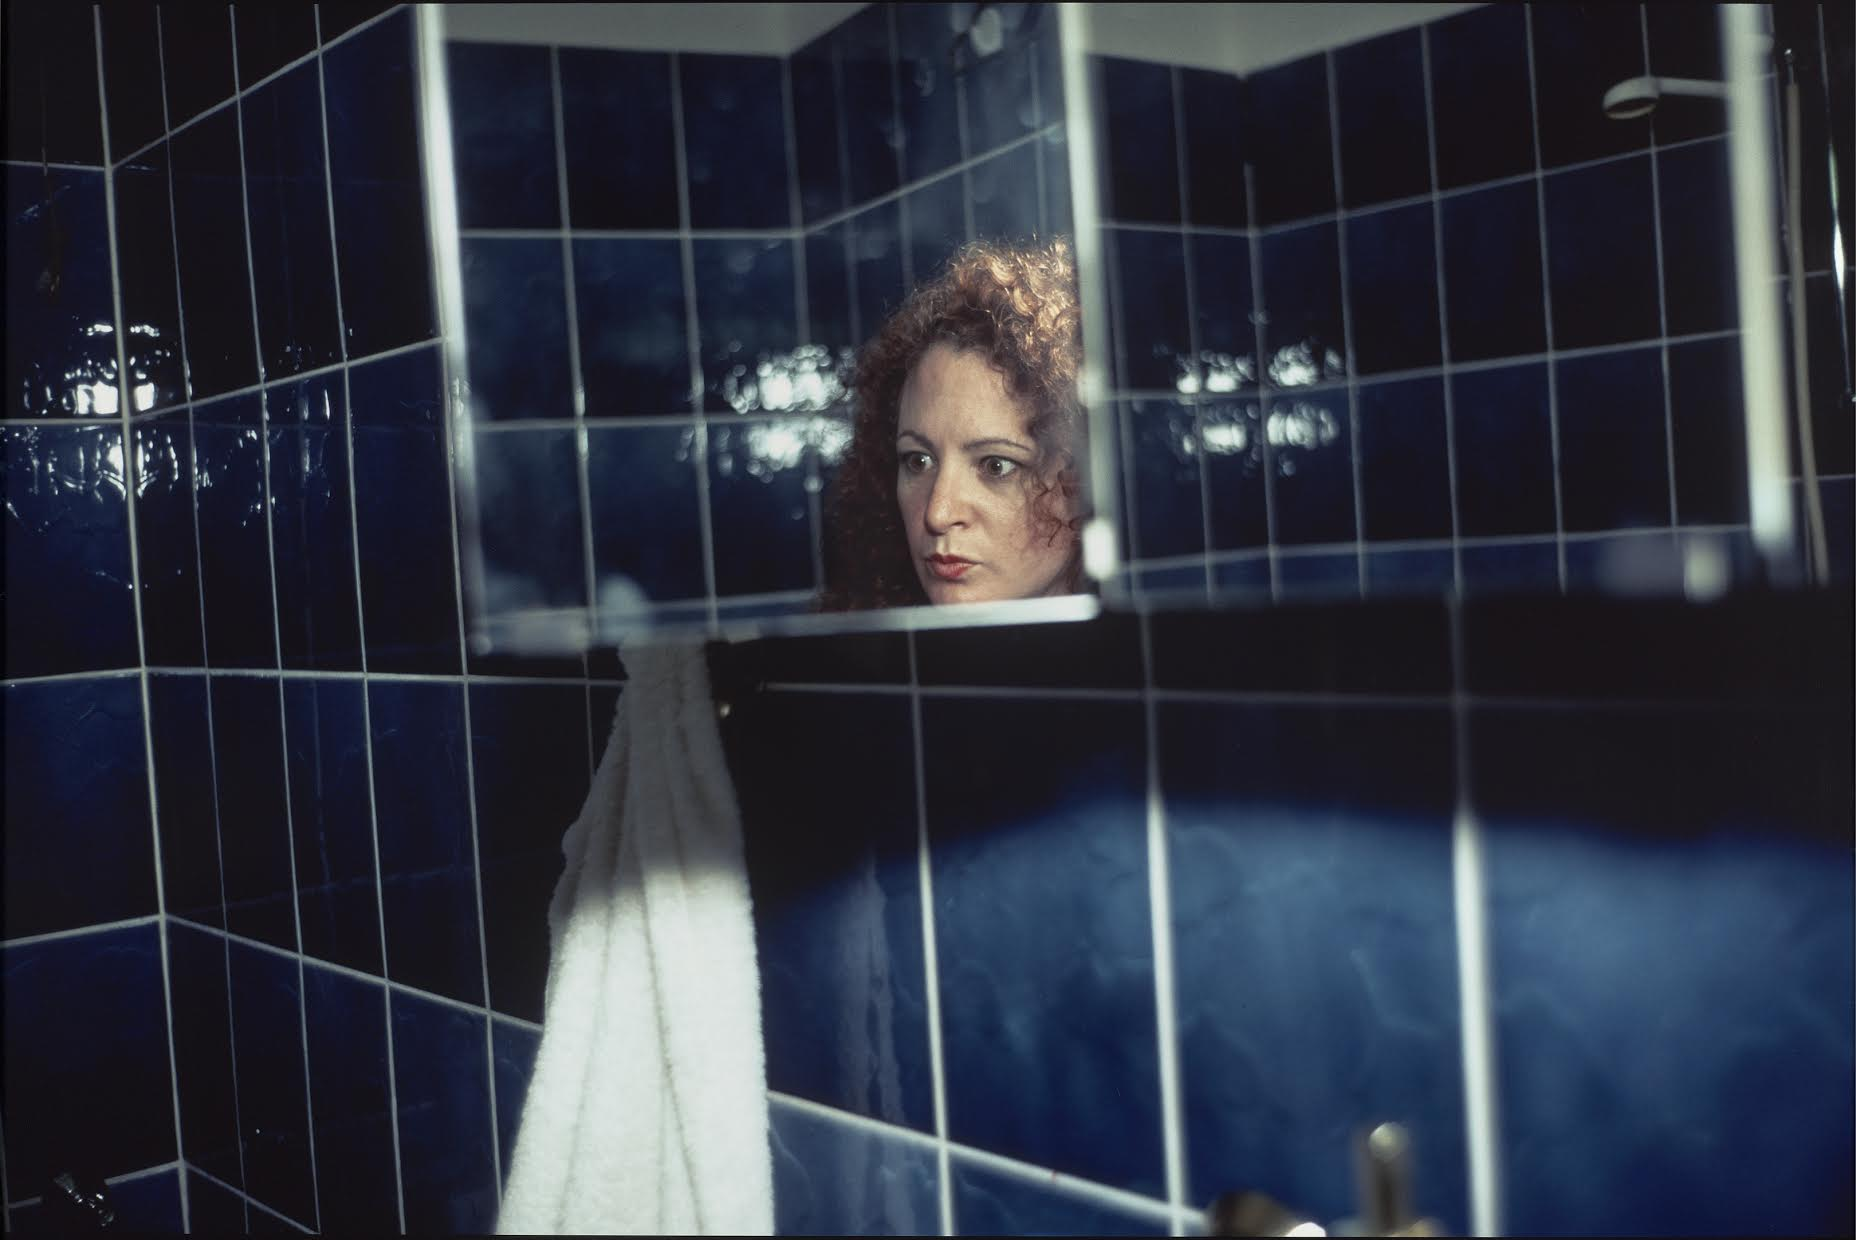 """Self-Portrait in My Blue Bathroom, Berlin"". Nan Goldin (American, born in 1953). 1991. Photograph, silver-dye bleach print. * Horace W. Goldsmith Foundation Fund for Photography. © Nan Goldin* Photograph © Museum of Fine Arts, Boston"